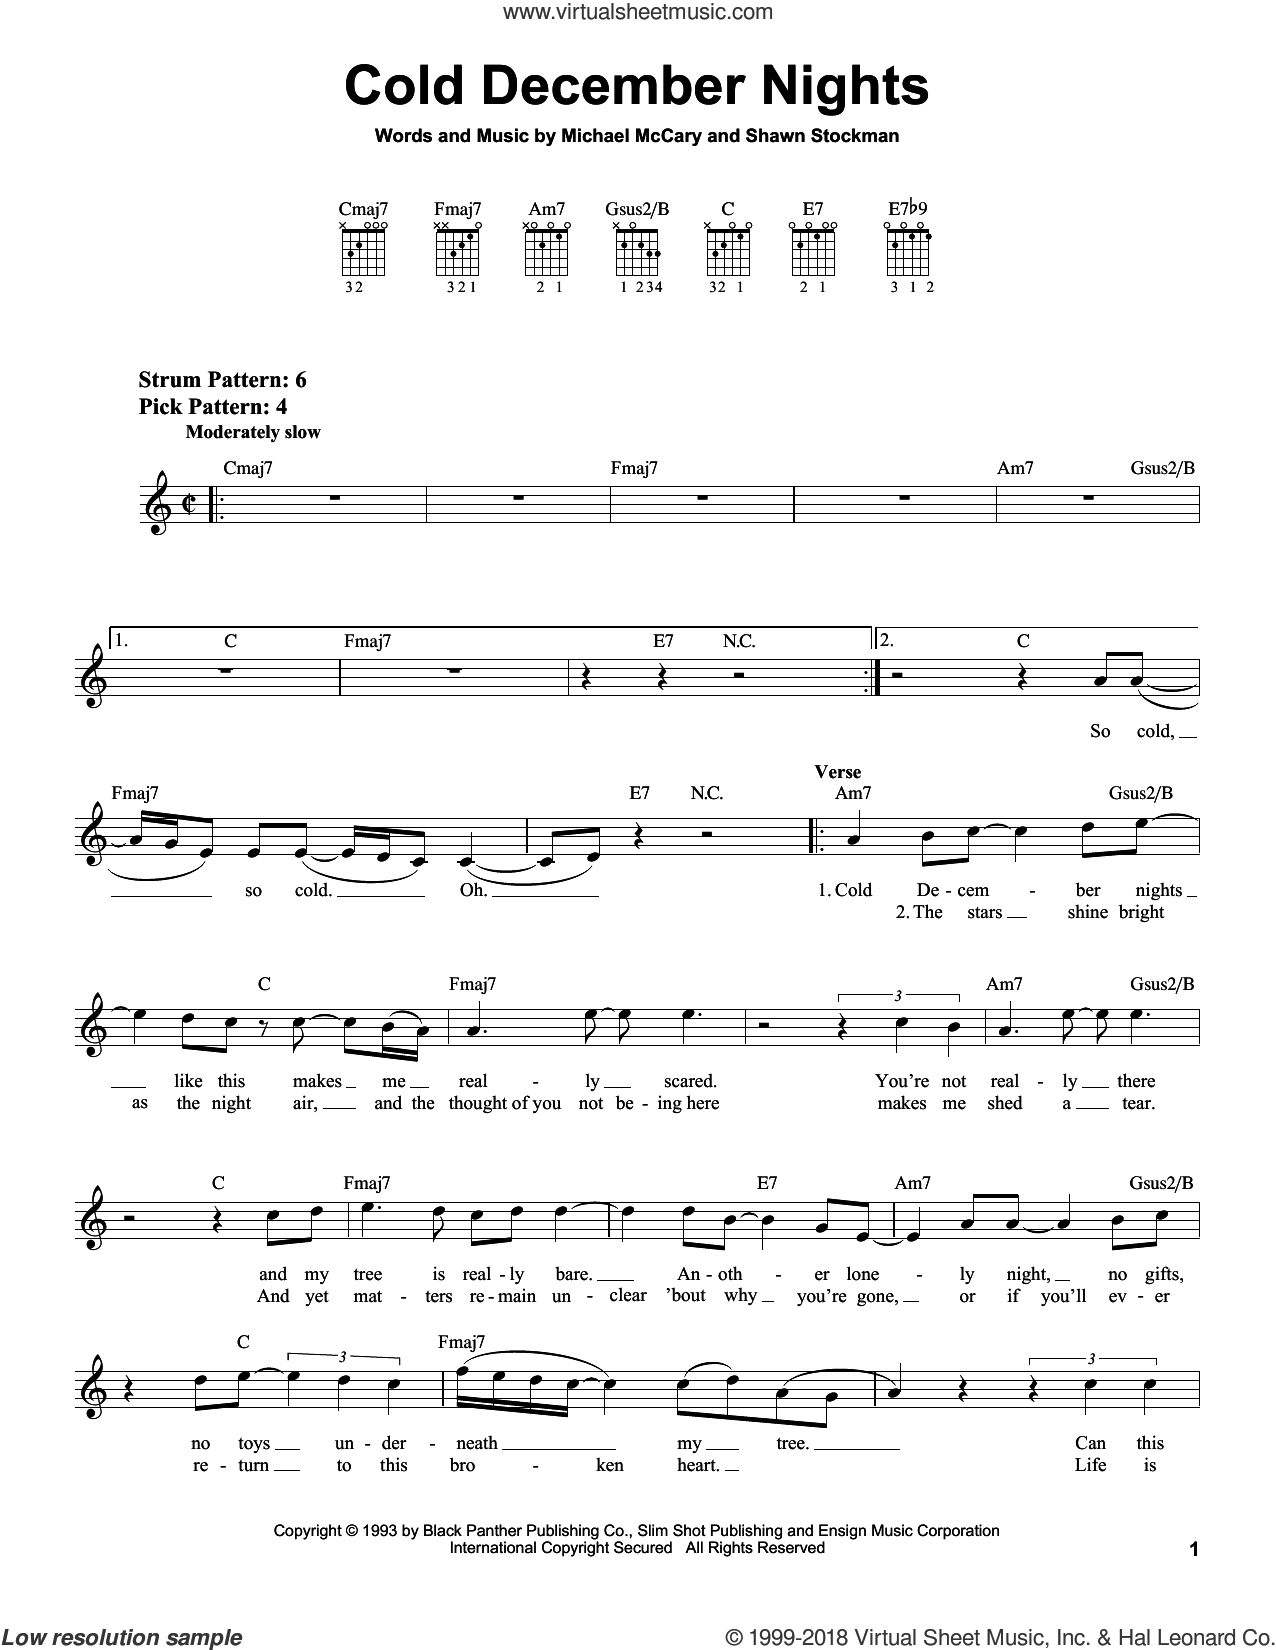 Cold December Nights sheet music for guitar solo (chords) by Shawn Stockman